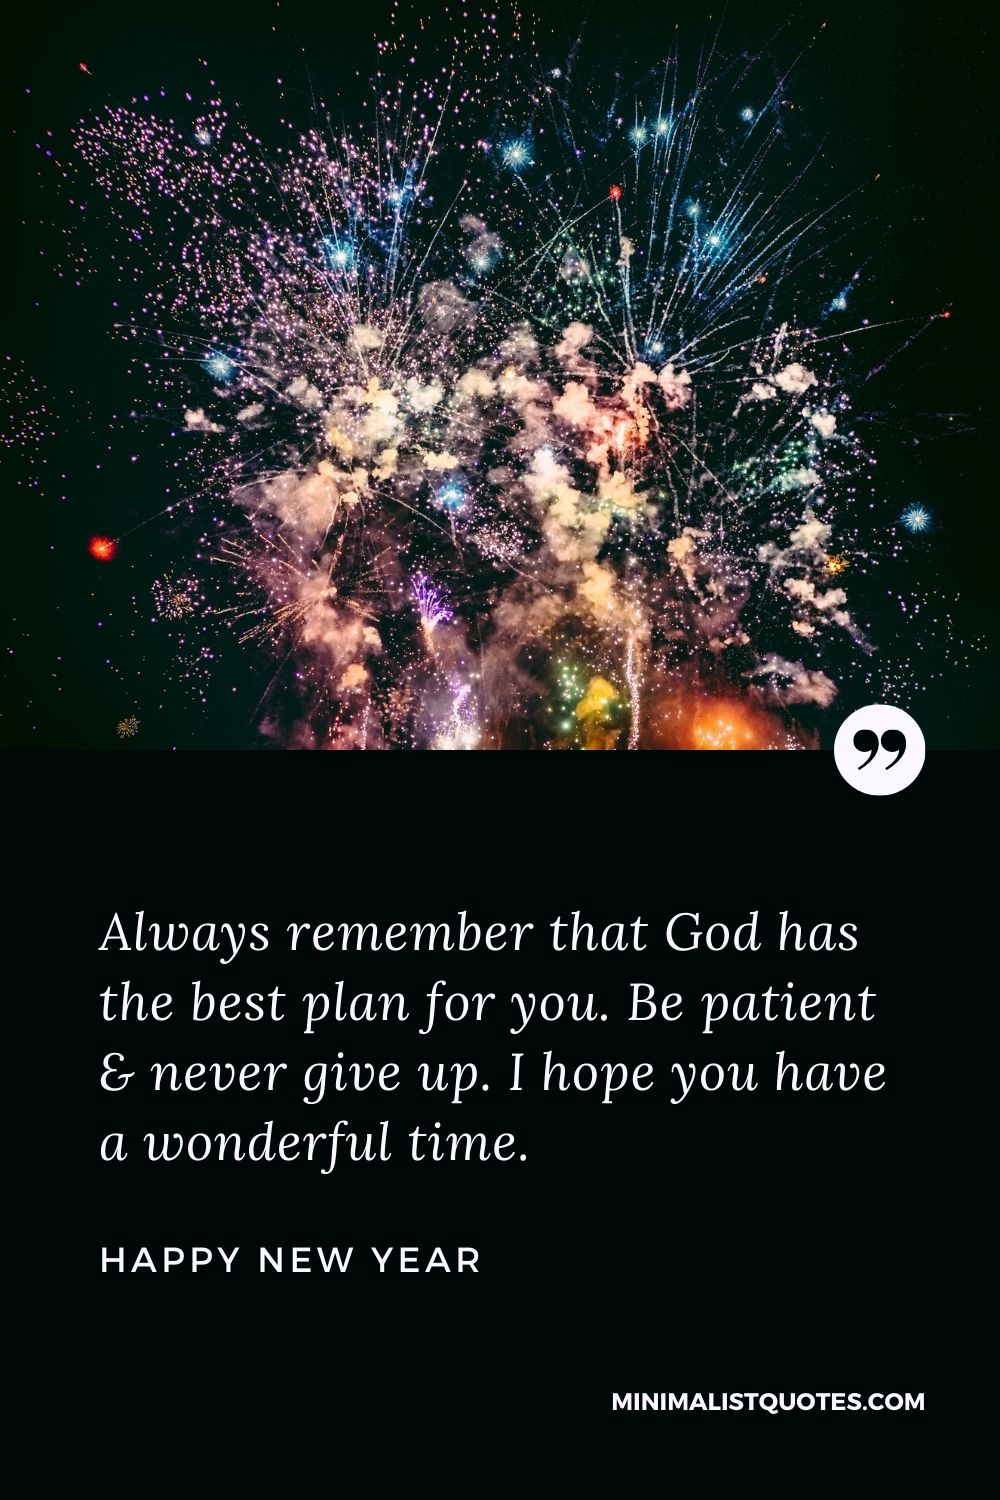 New Year Wish - Always remember that God has the best plan for you. Be patient& never give up. I hope you have a wonderful time.